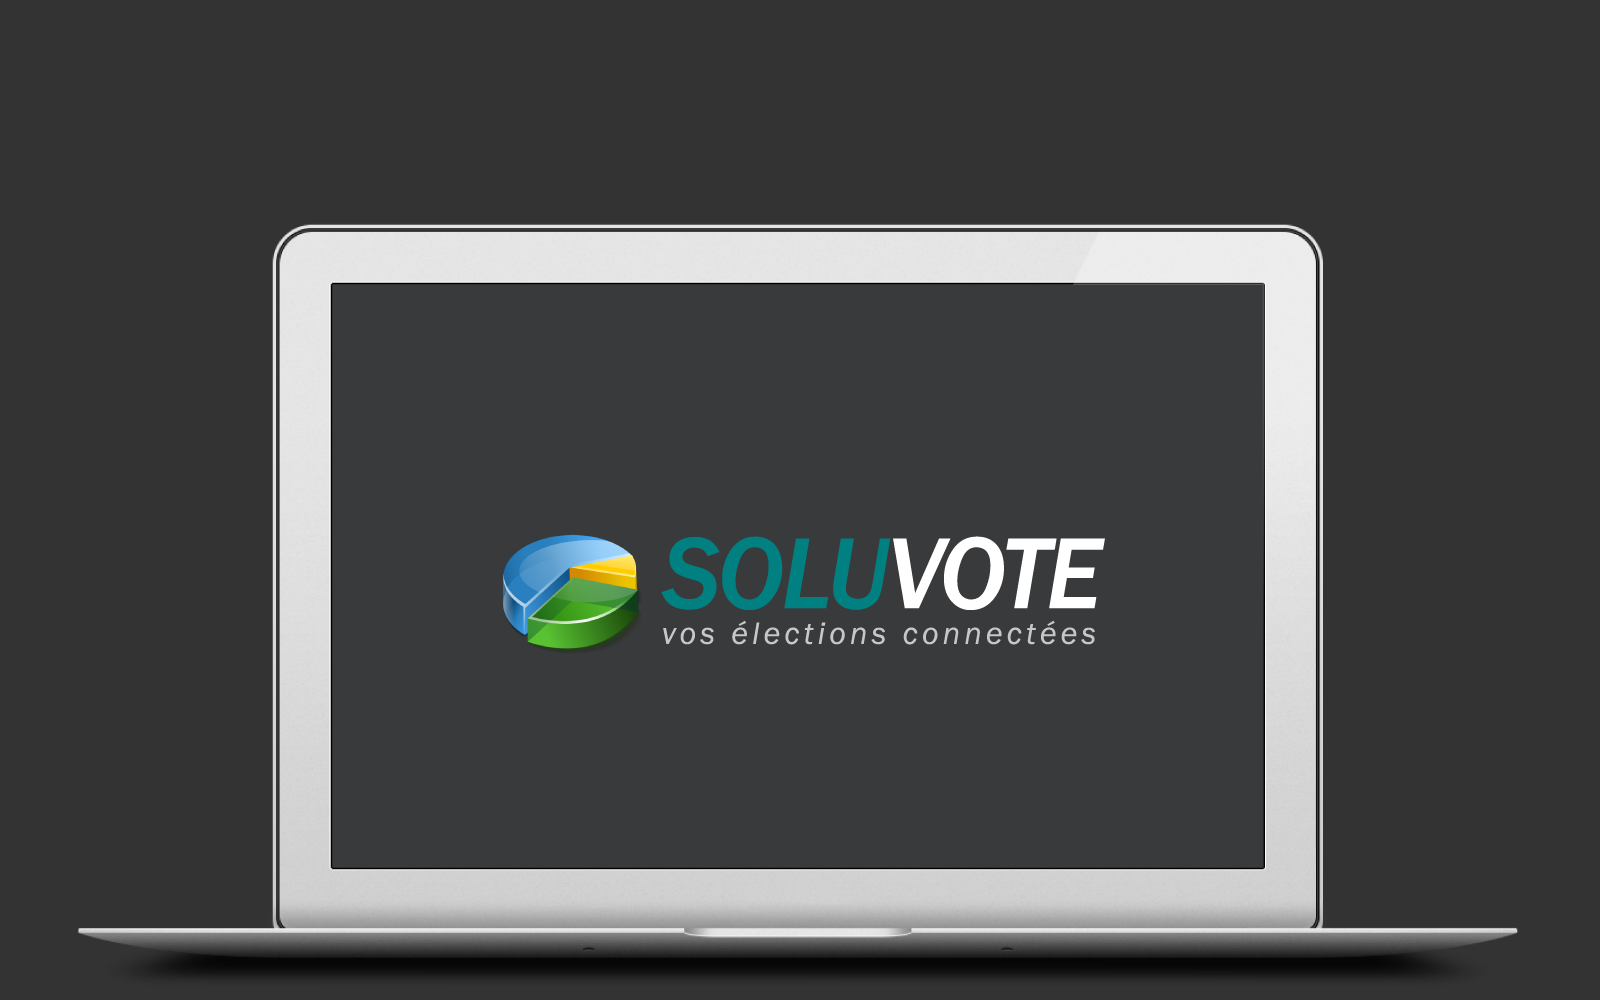 http://soluvote.com/wp-content/uploads/2017/02/SoluVote-Accueil-0A.png